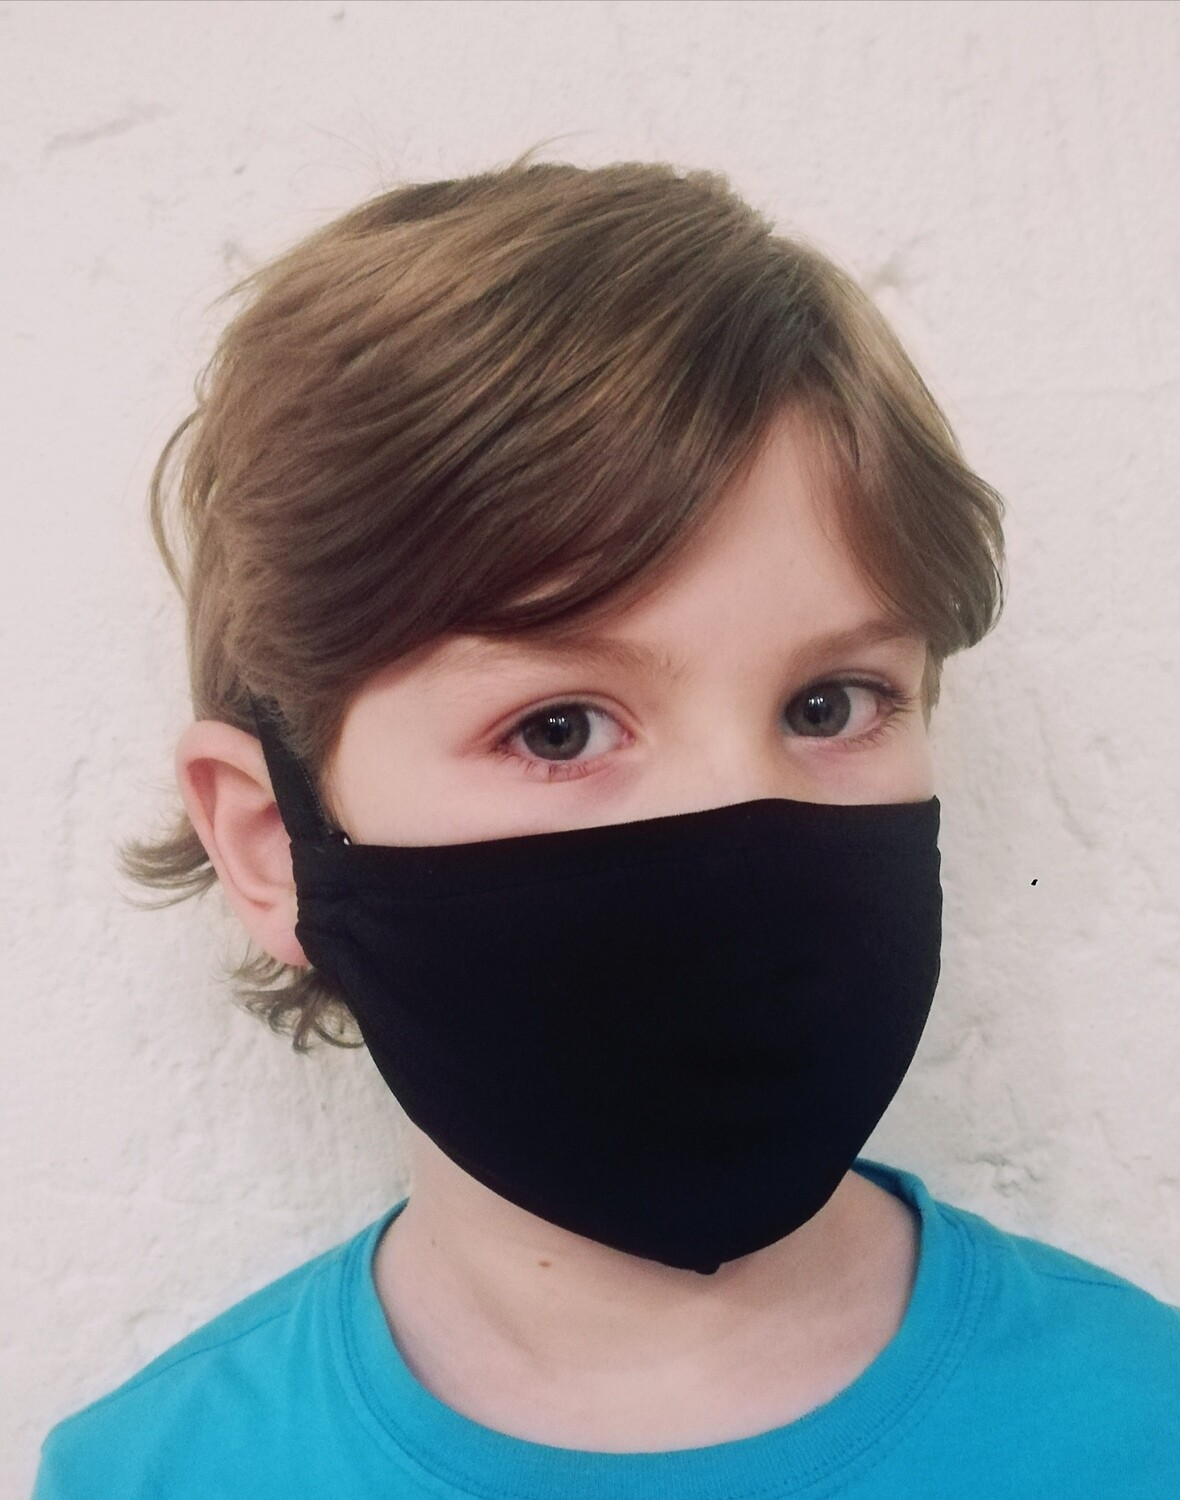 Smart Mask with 10 filters, for children & toddlers